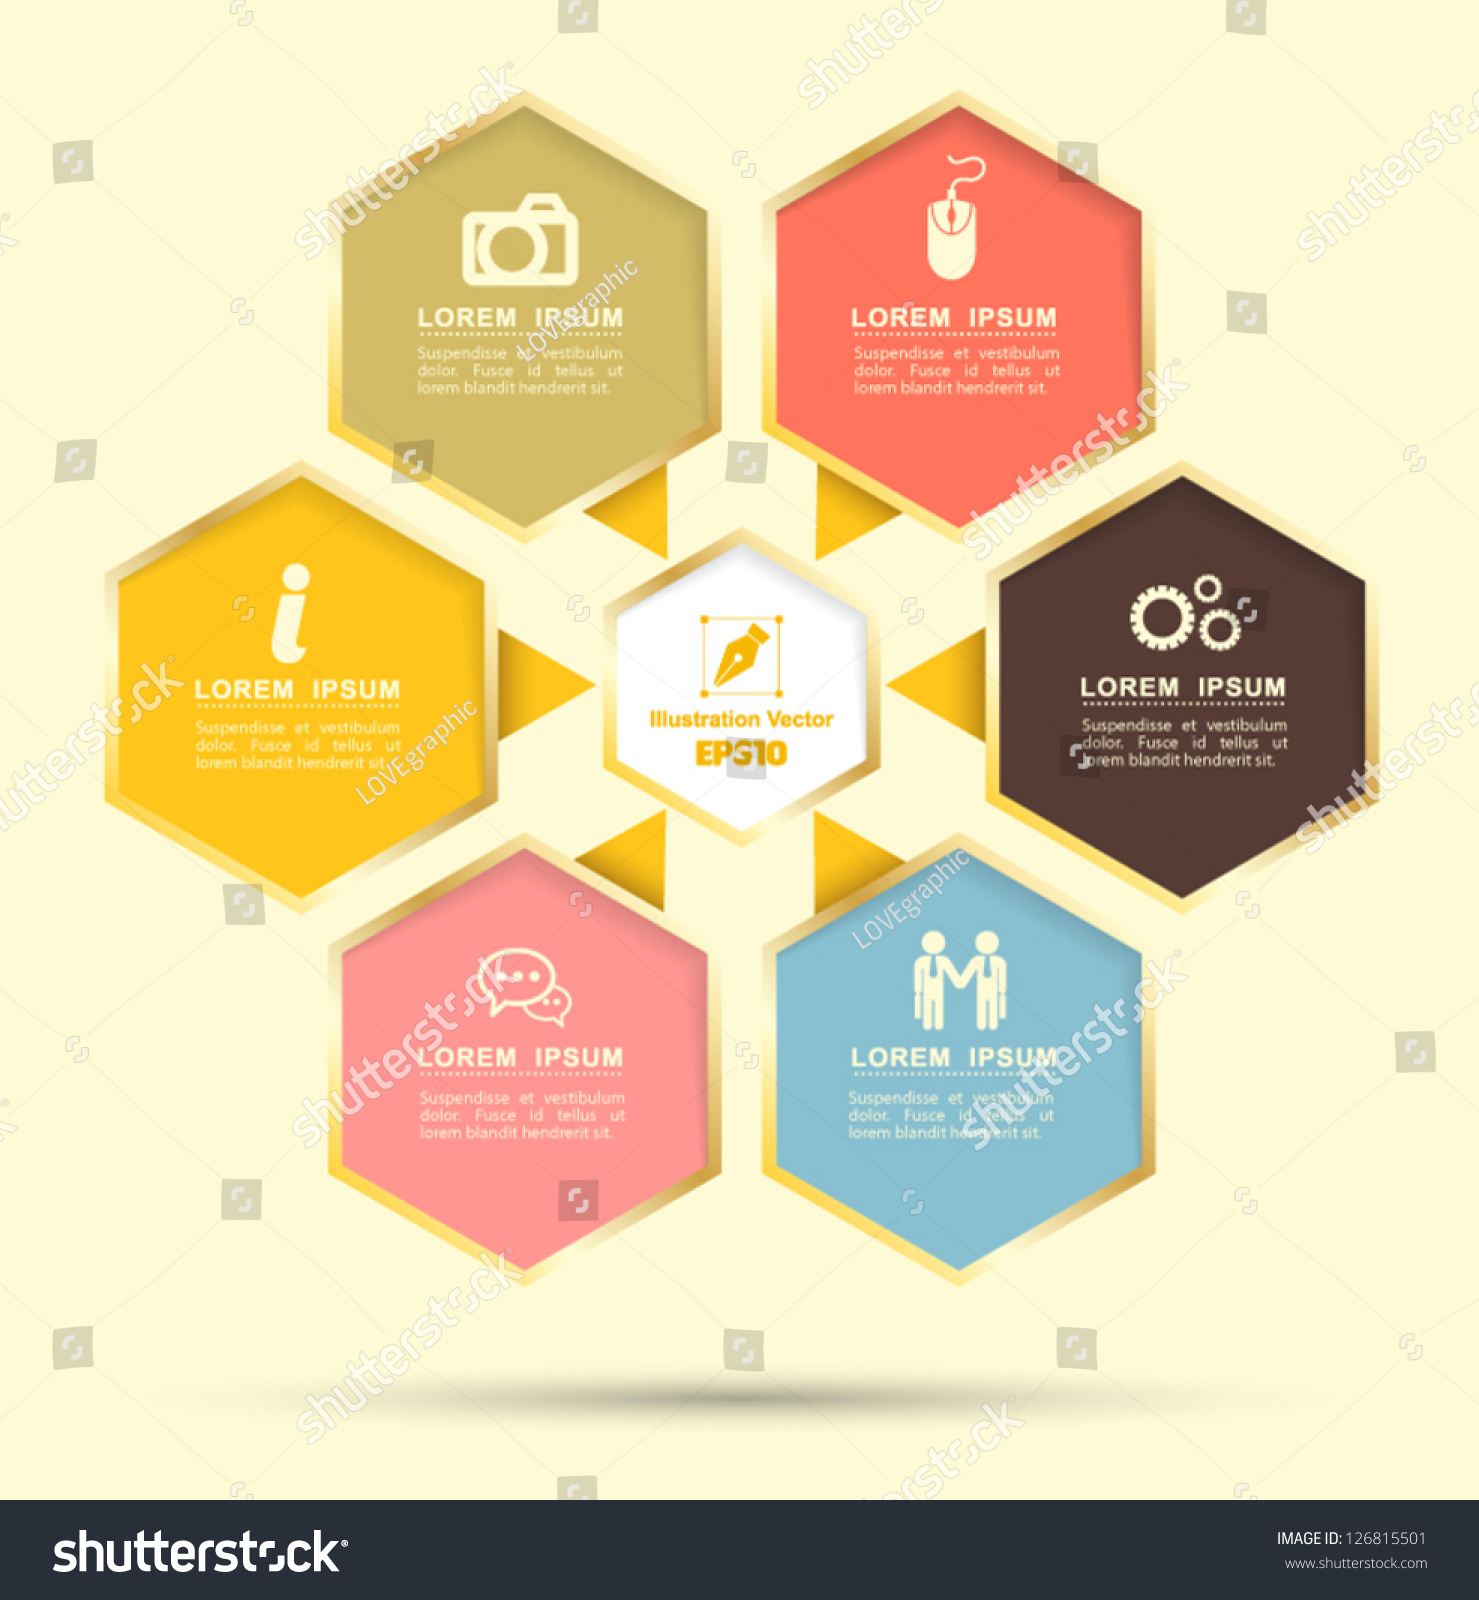 Hexagon Group Business Plan Use Education Stock Vector 126815501 Shutterstock